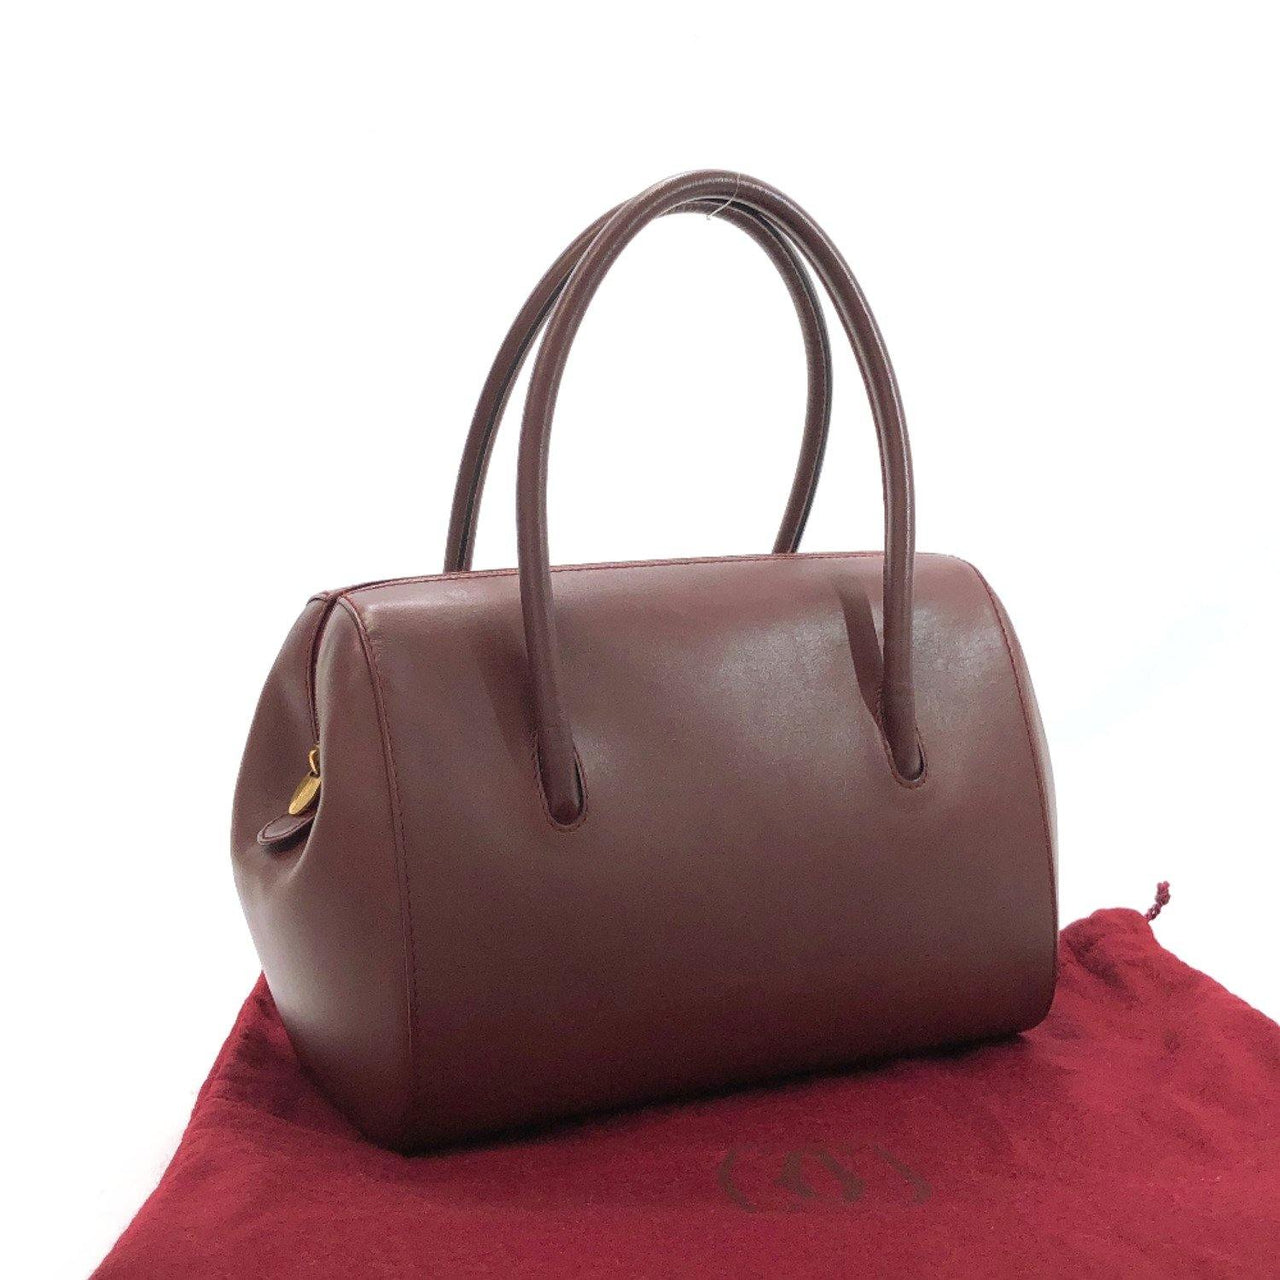 CARTIER Handbag leather Bordeaux Women Used - JP-BRANDS.com